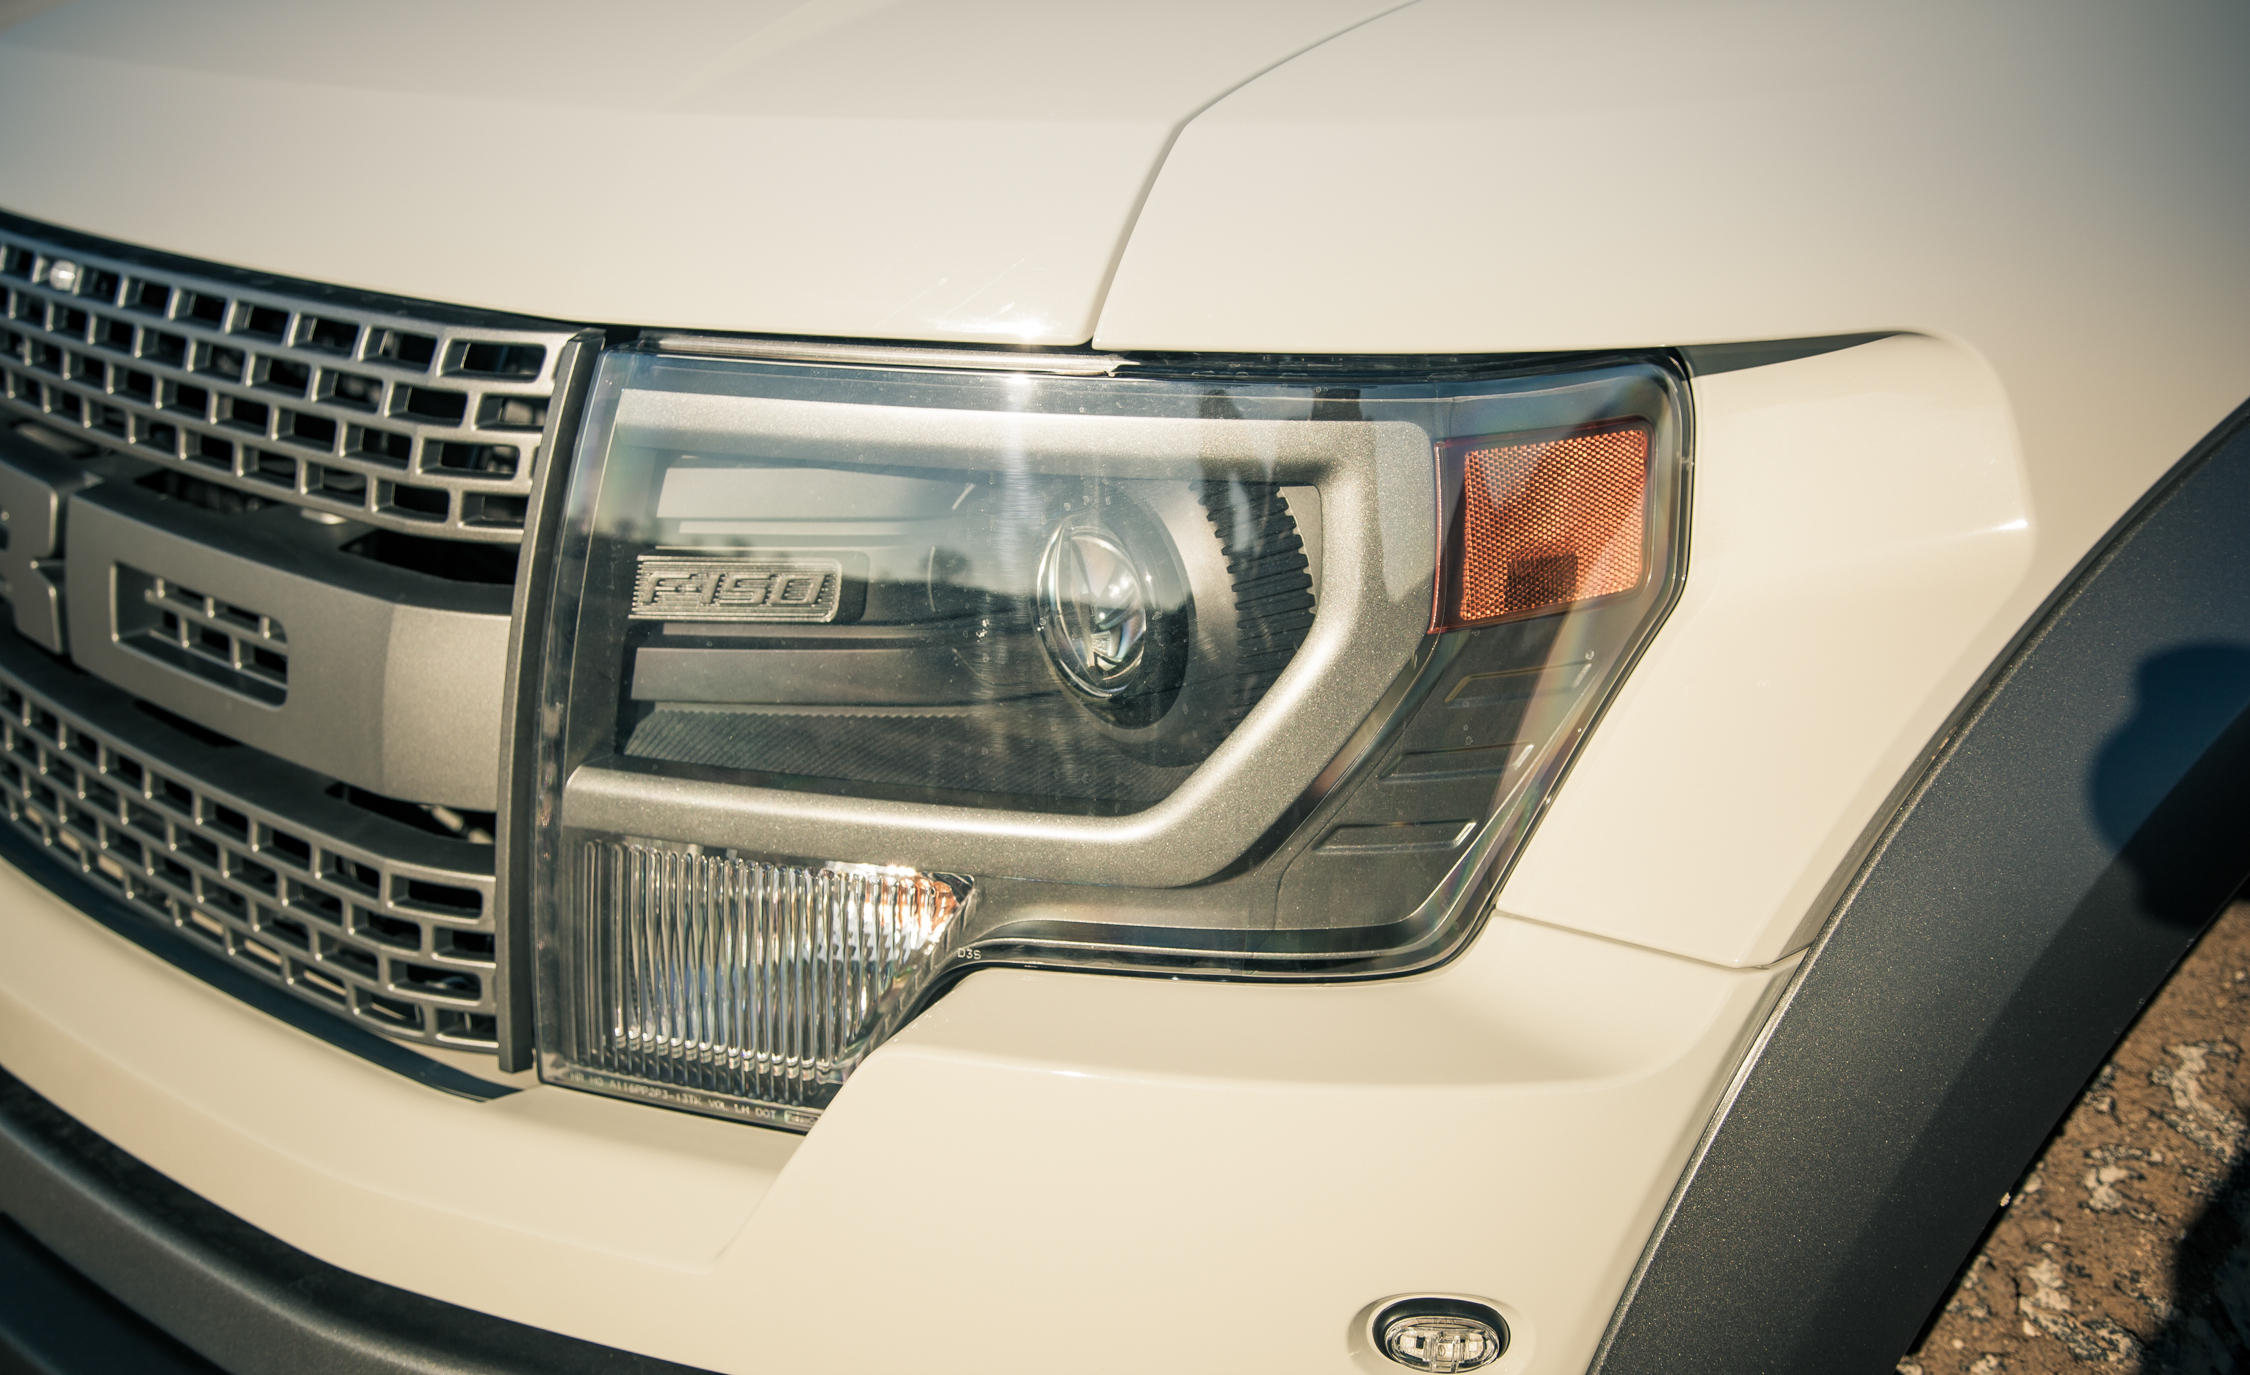 2013 Ford F 150 SVT Raptor Exterior View Headlight (Photo 8 of 39)